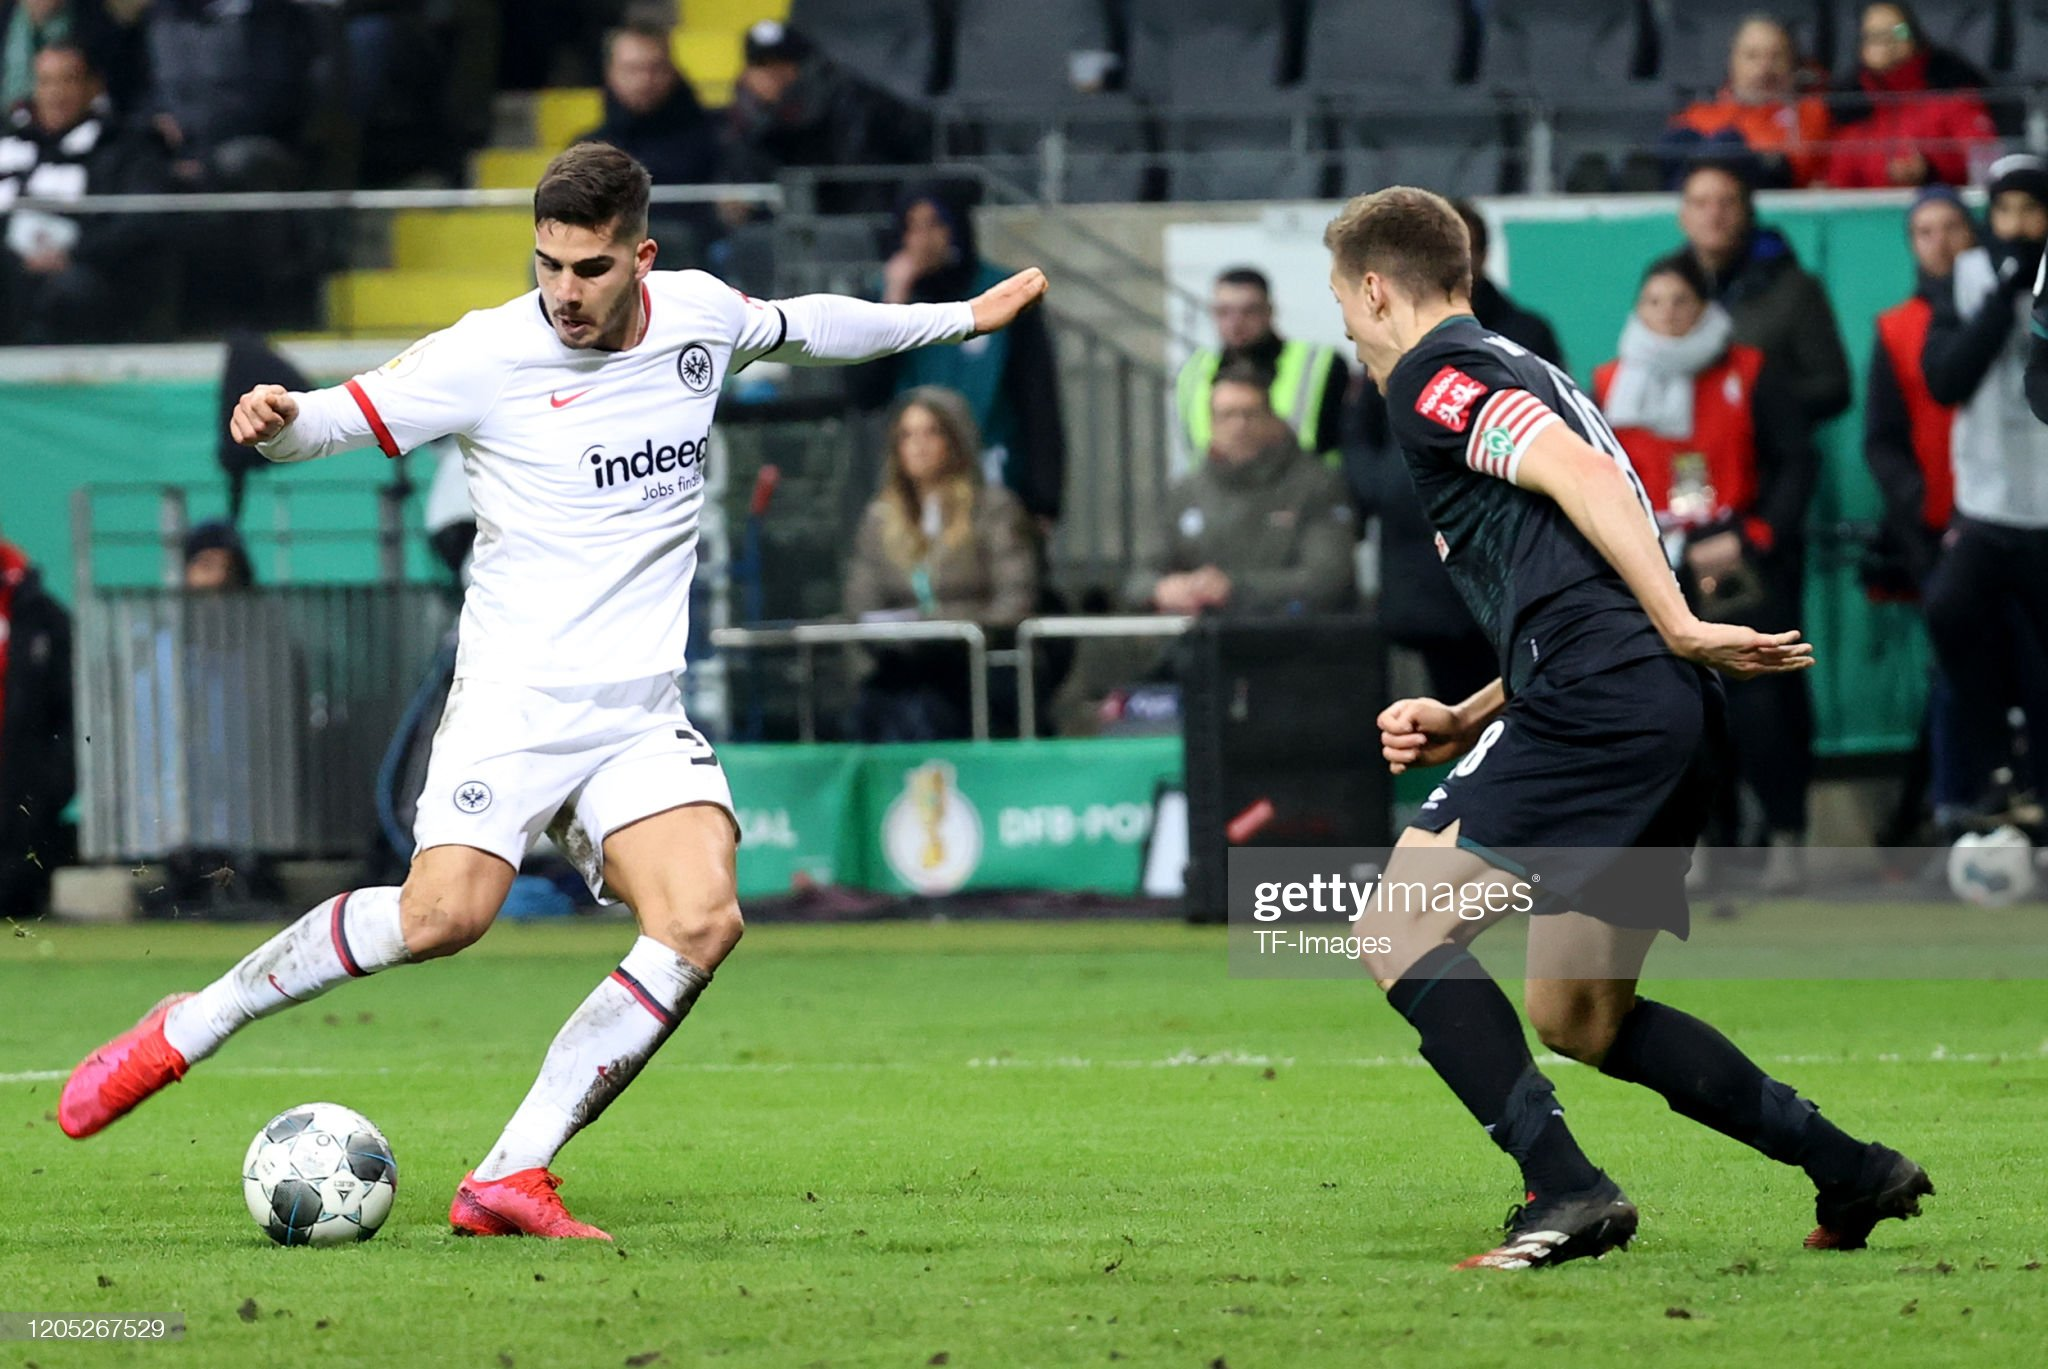 Werder Bremen vs Eintracht Frankfurt Preview, prediction and odds